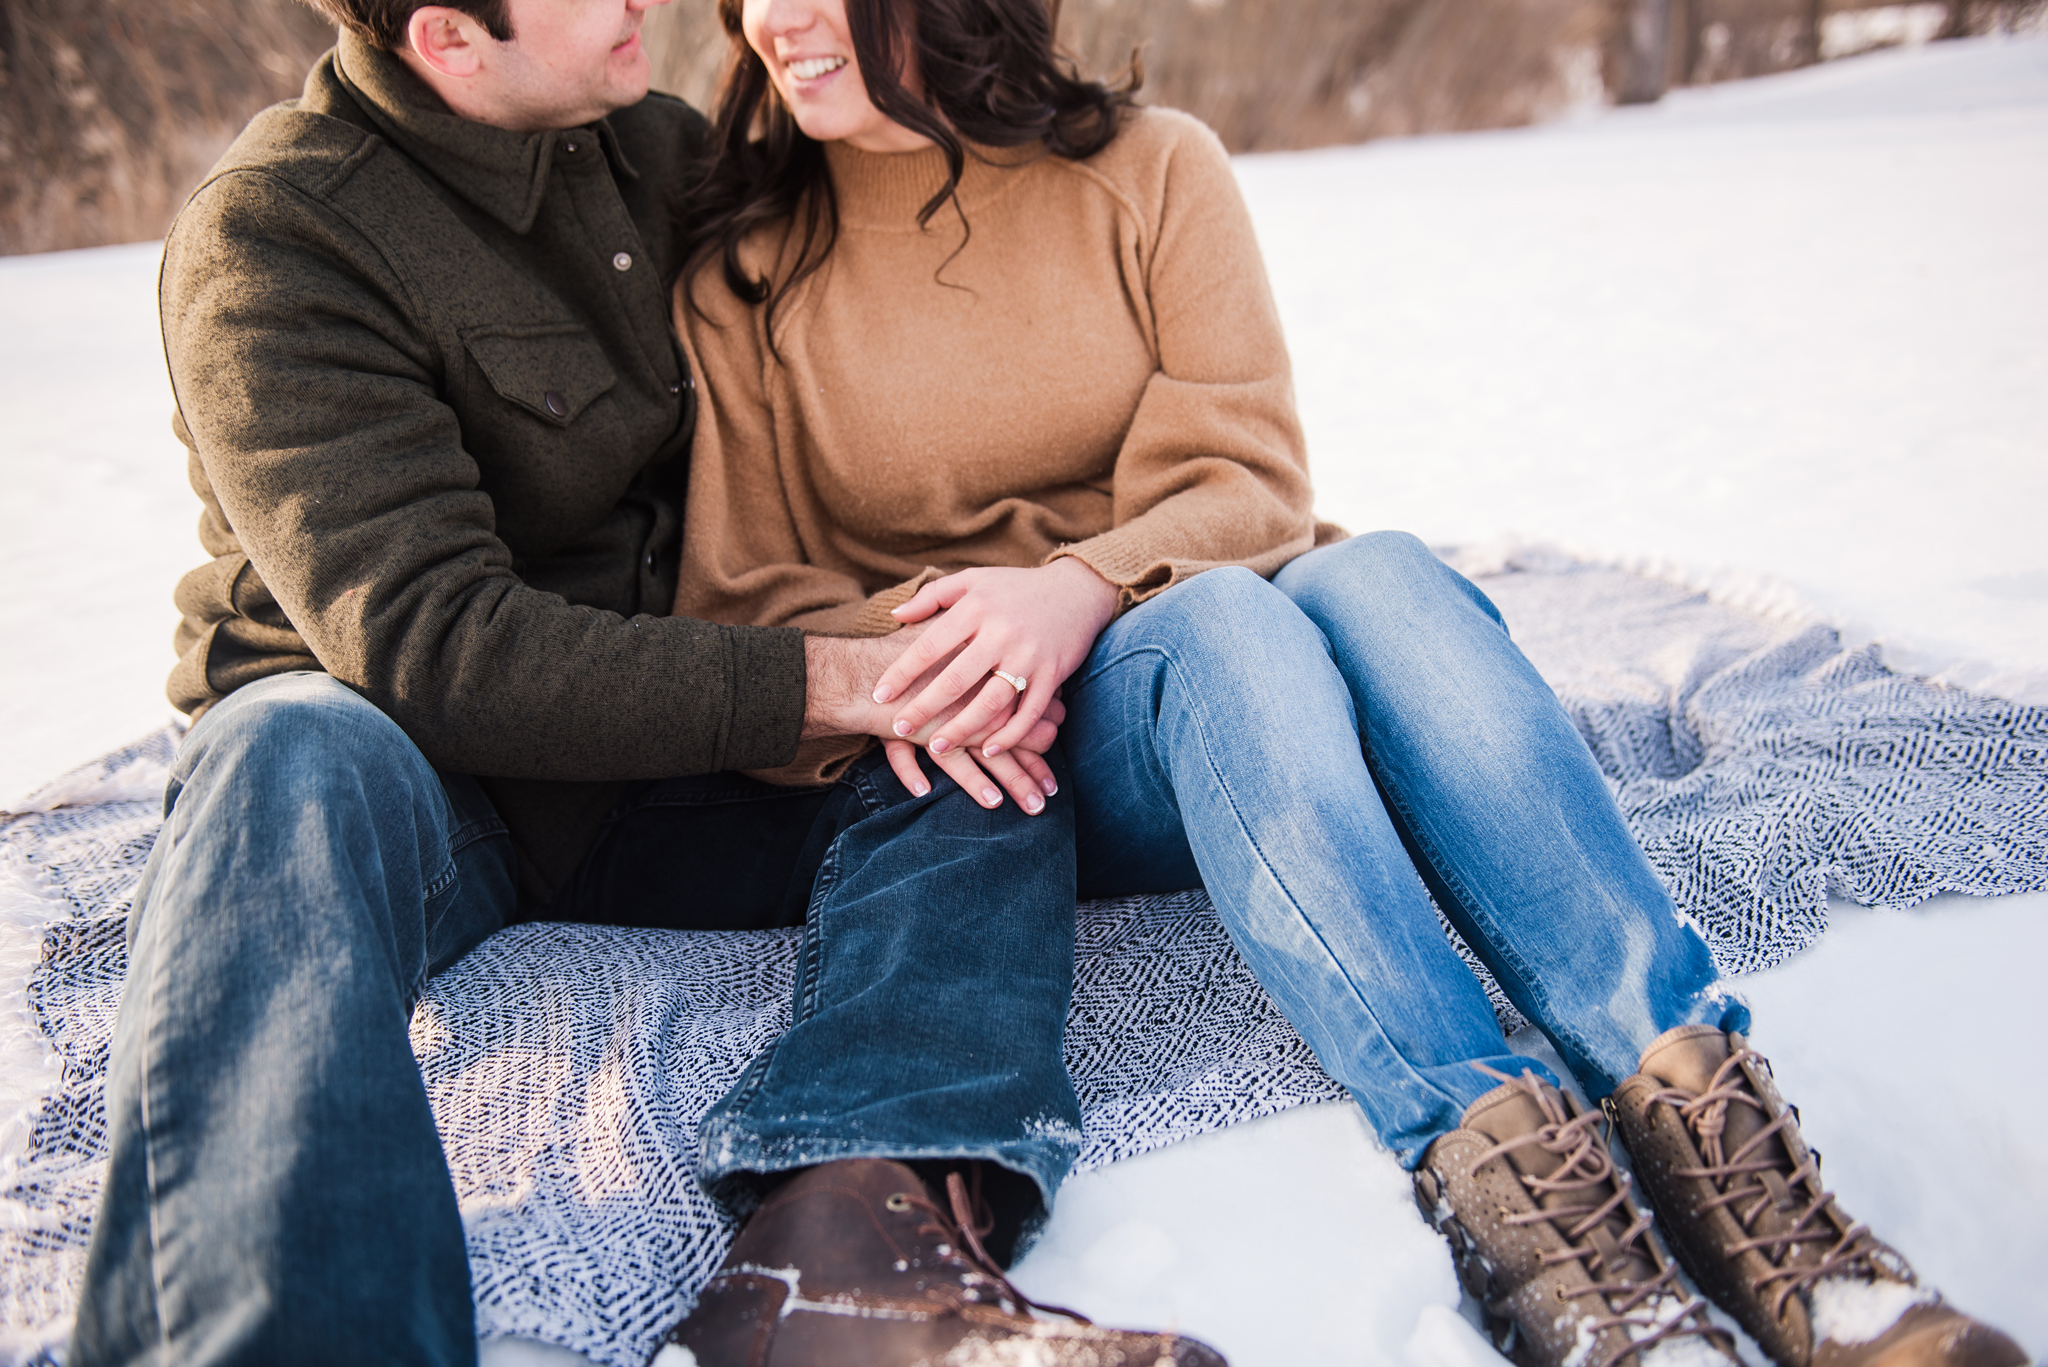 Fallbrook_Central_NY_Engagement_Session_JILL_STUDIO_Rochester_NY_Photographer_DSC_4822.jpg